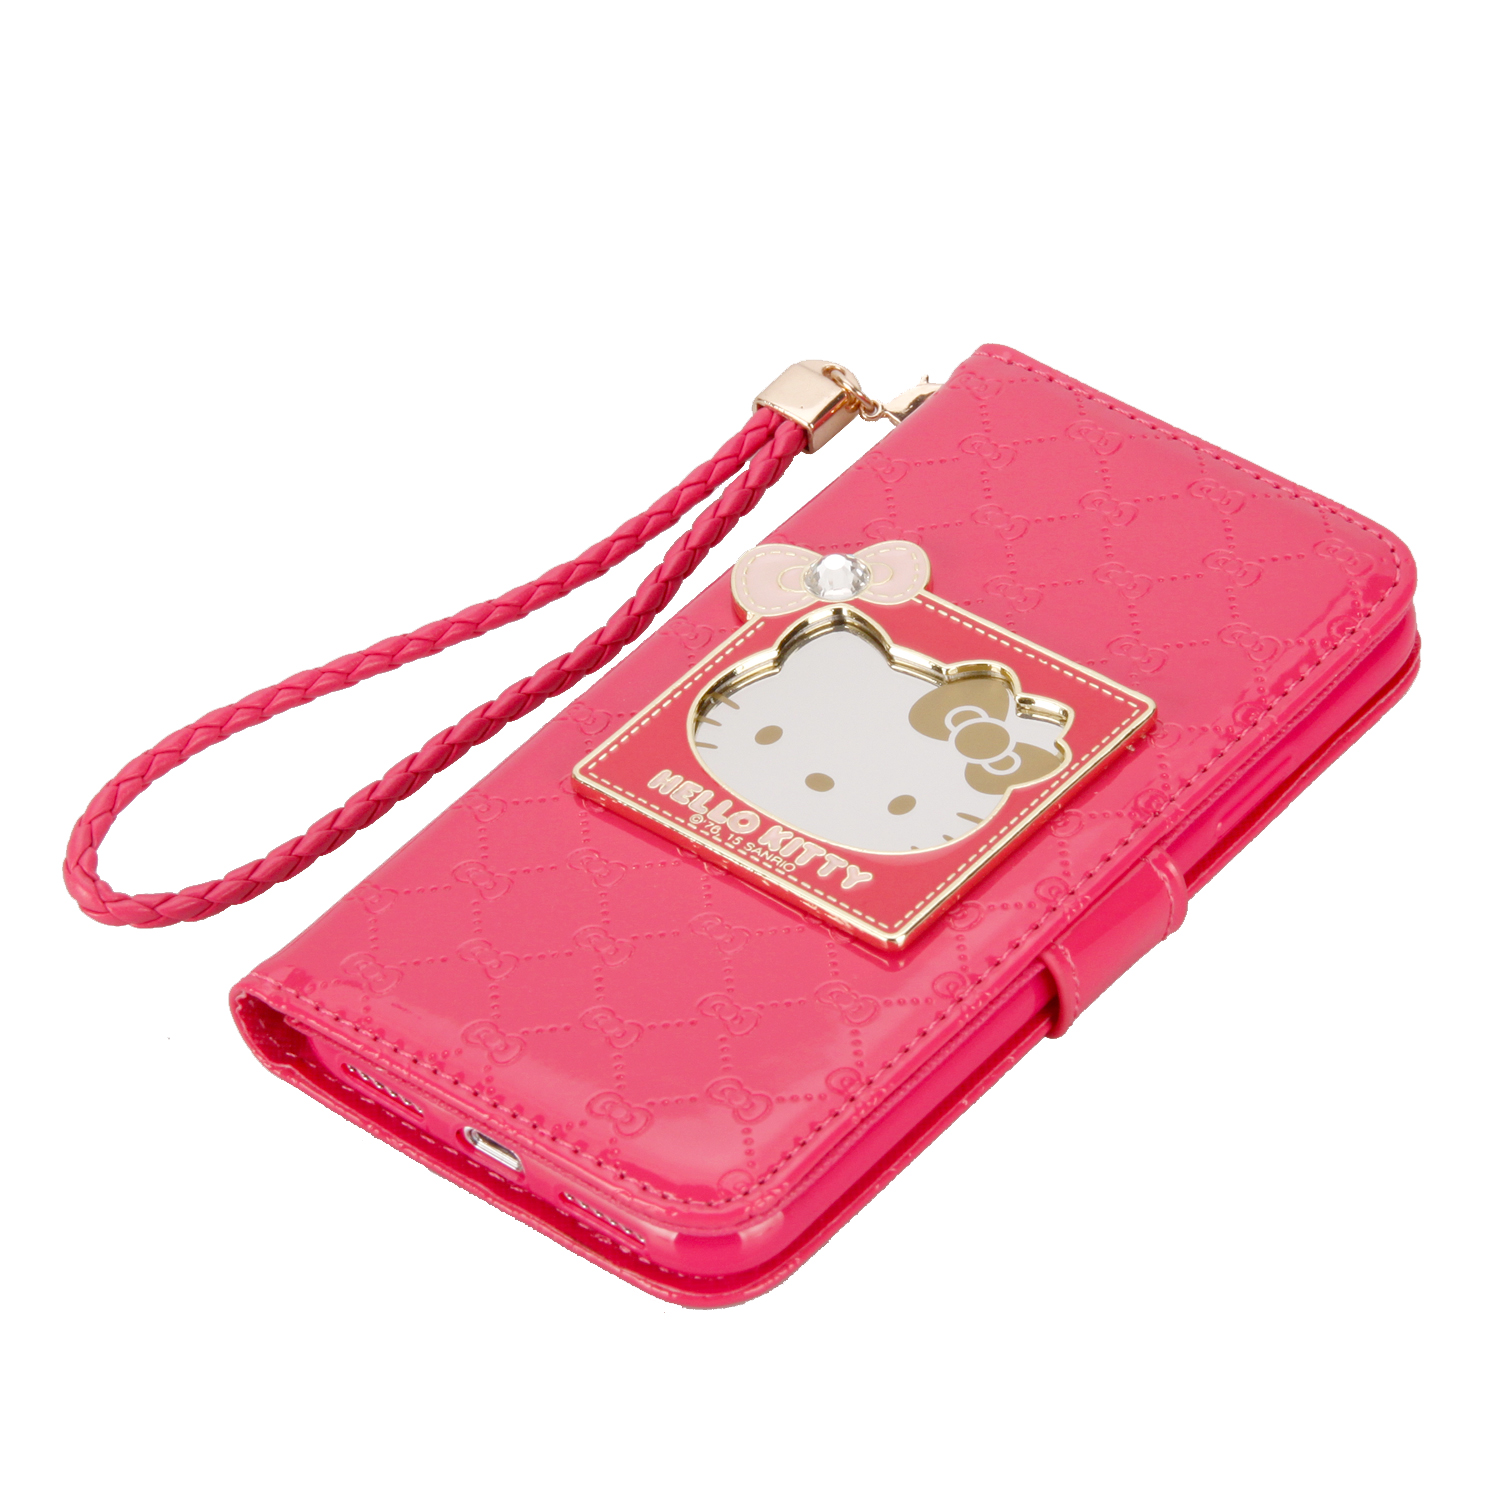 Luxury Hello Kitty Leather Phone case cover Wallet case for iPhone 6/7/8 6/7/8P iPhone X